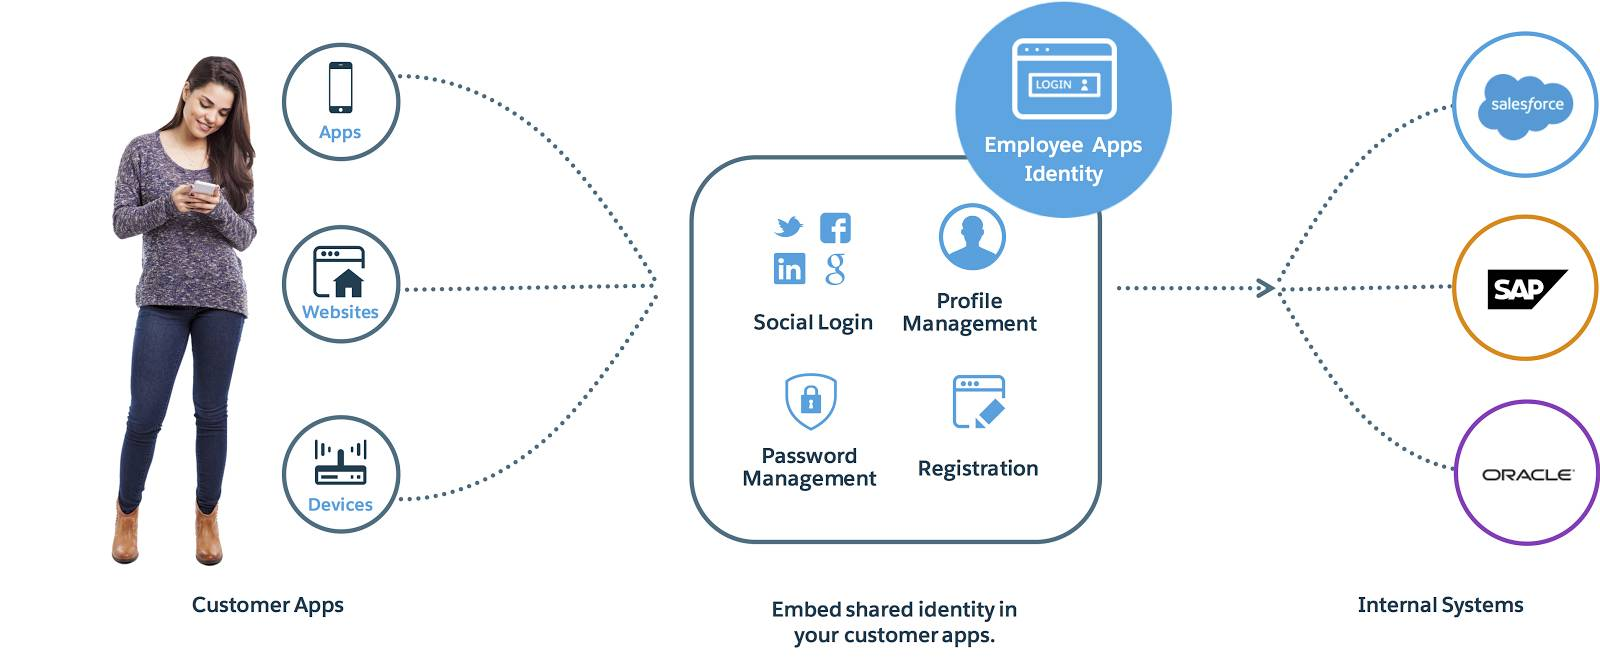 A diagram linking employee identity to internal systems such as Oracle, SAP, and Salesforce, and other customer apps, websites, and devices